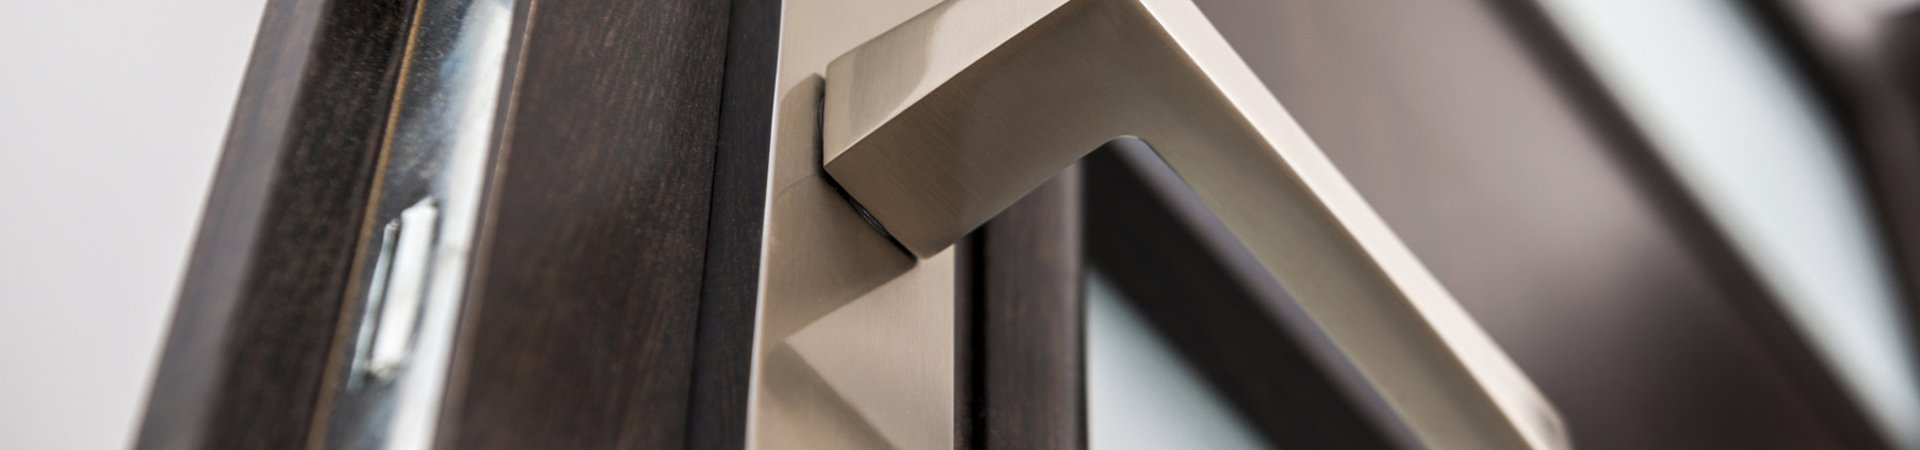 hard edged door handle and sturdy wooden door & Door Installers | Melbourne | Frankston Door \u0026 Window Centre